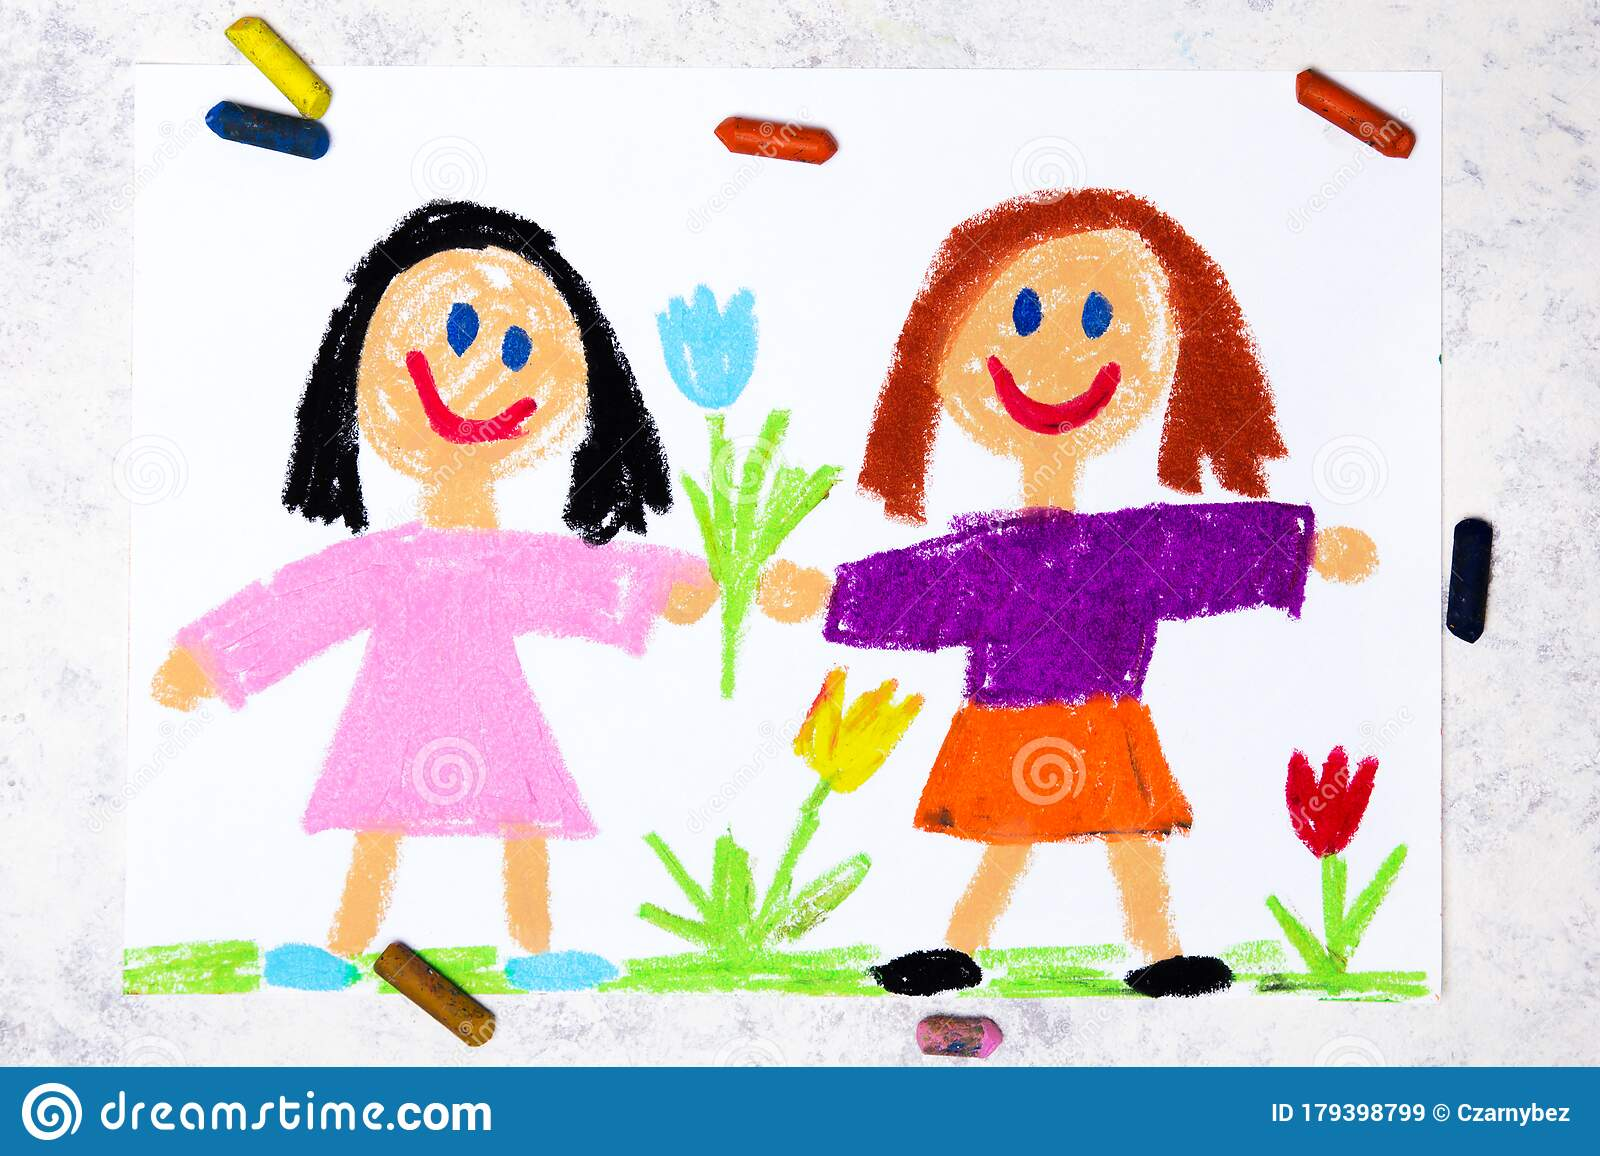 114 Best Friends Cartoon Photos Free Royalty Free Stock Photos From Dreamstime